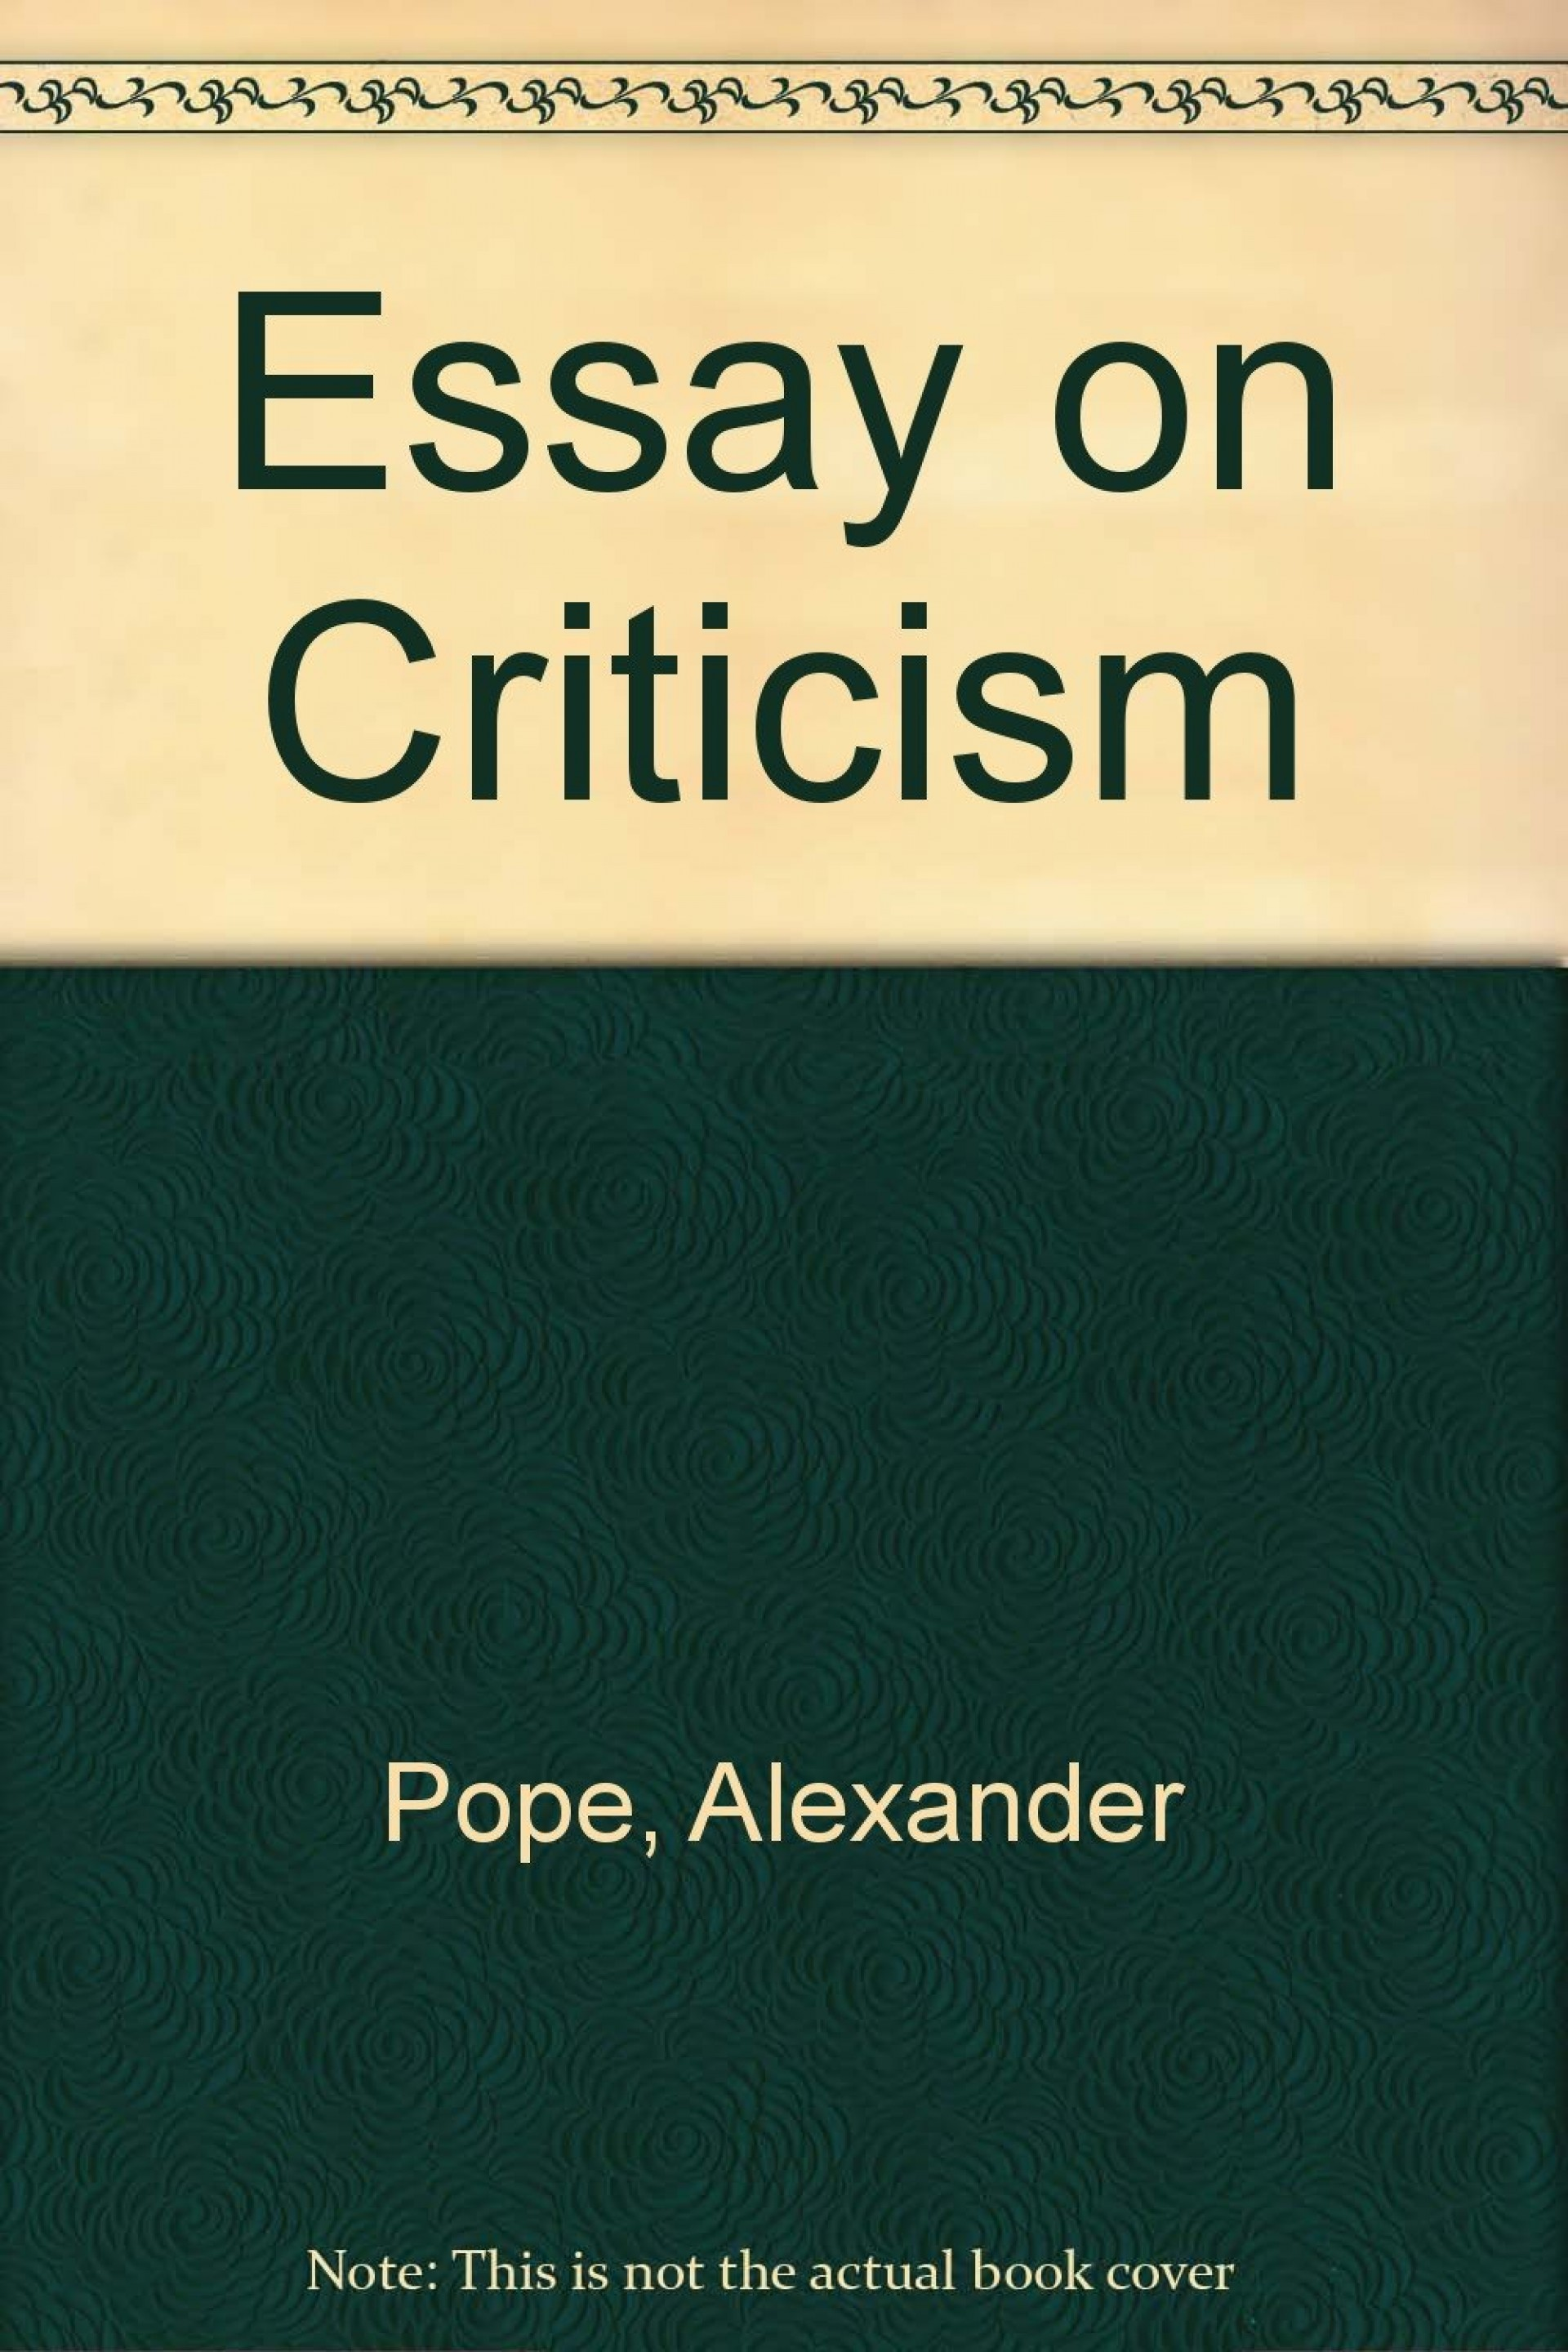 008 71dckmtazql Essay Example Pope On Unique Criticism Part 2 Pope's Was Written In 1920